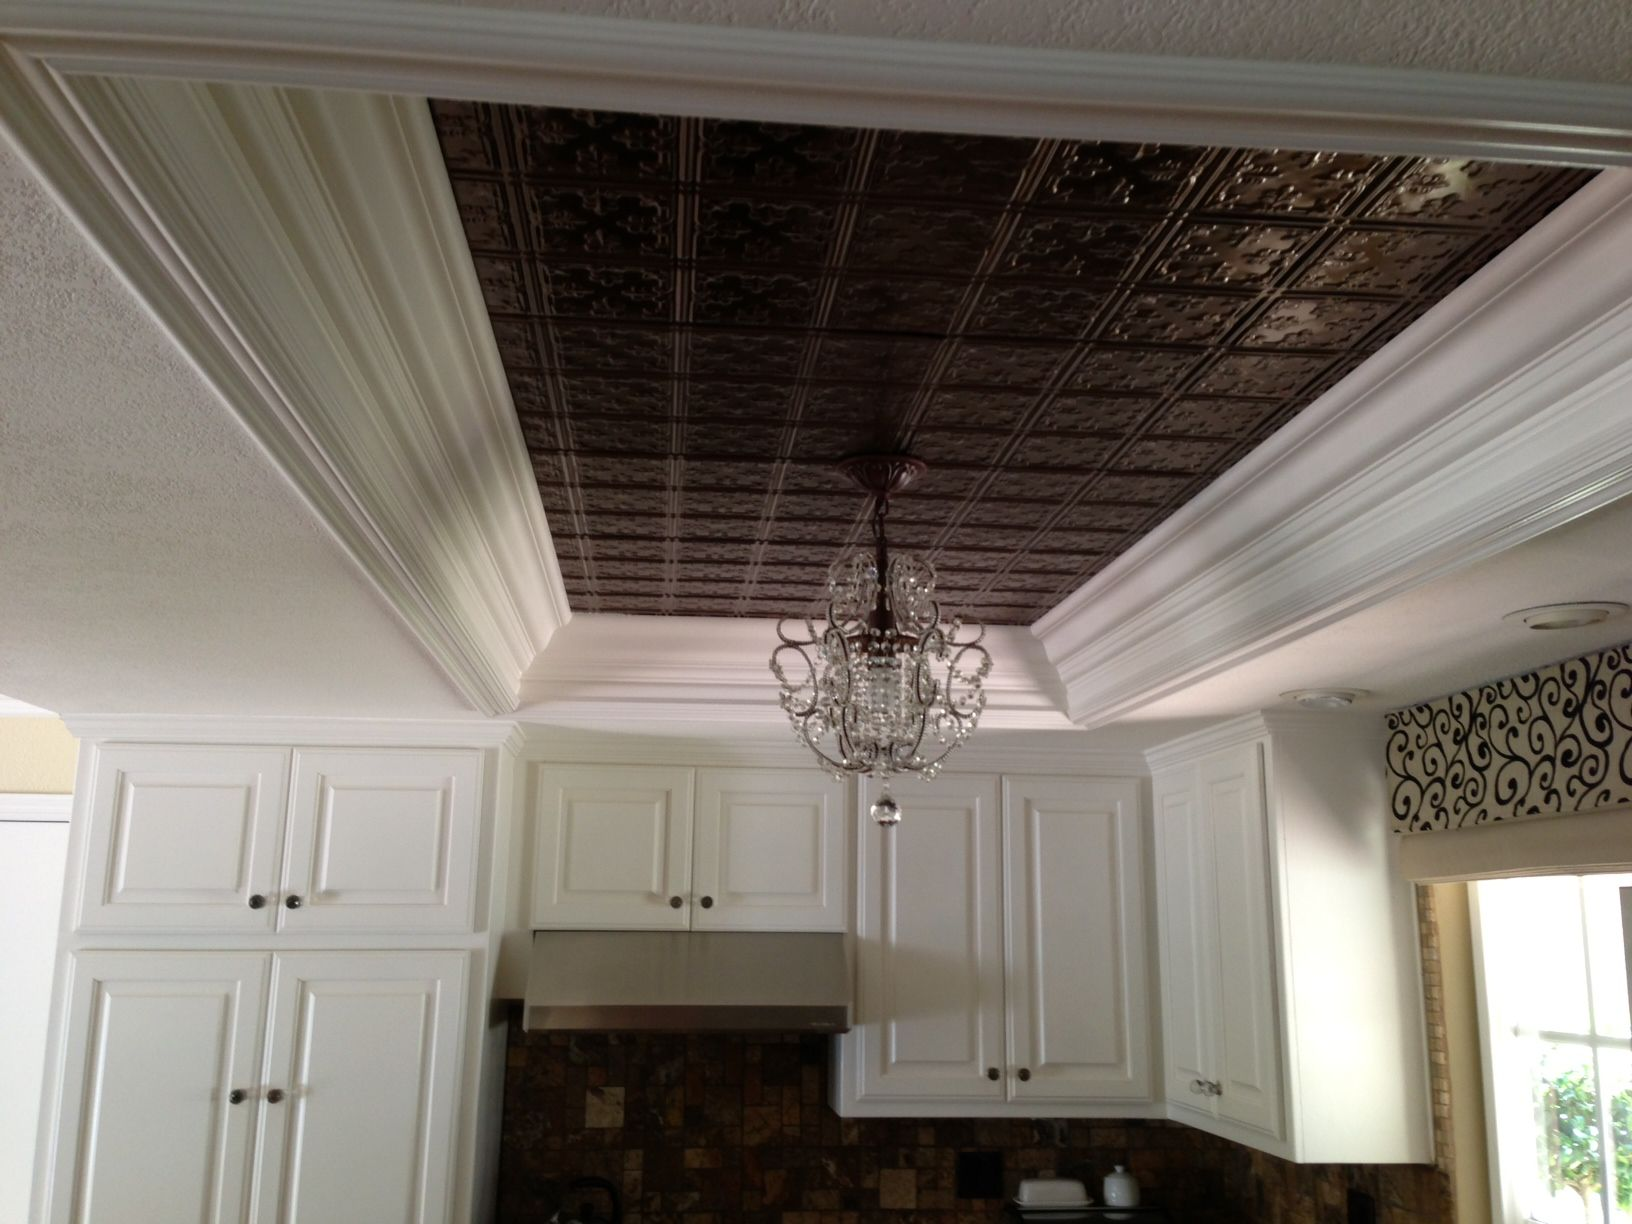 lighting for kitchens ceilings. kitchen ceiling tiles and hanging light replace dated fluorescent lighting for kitchens ceilings n